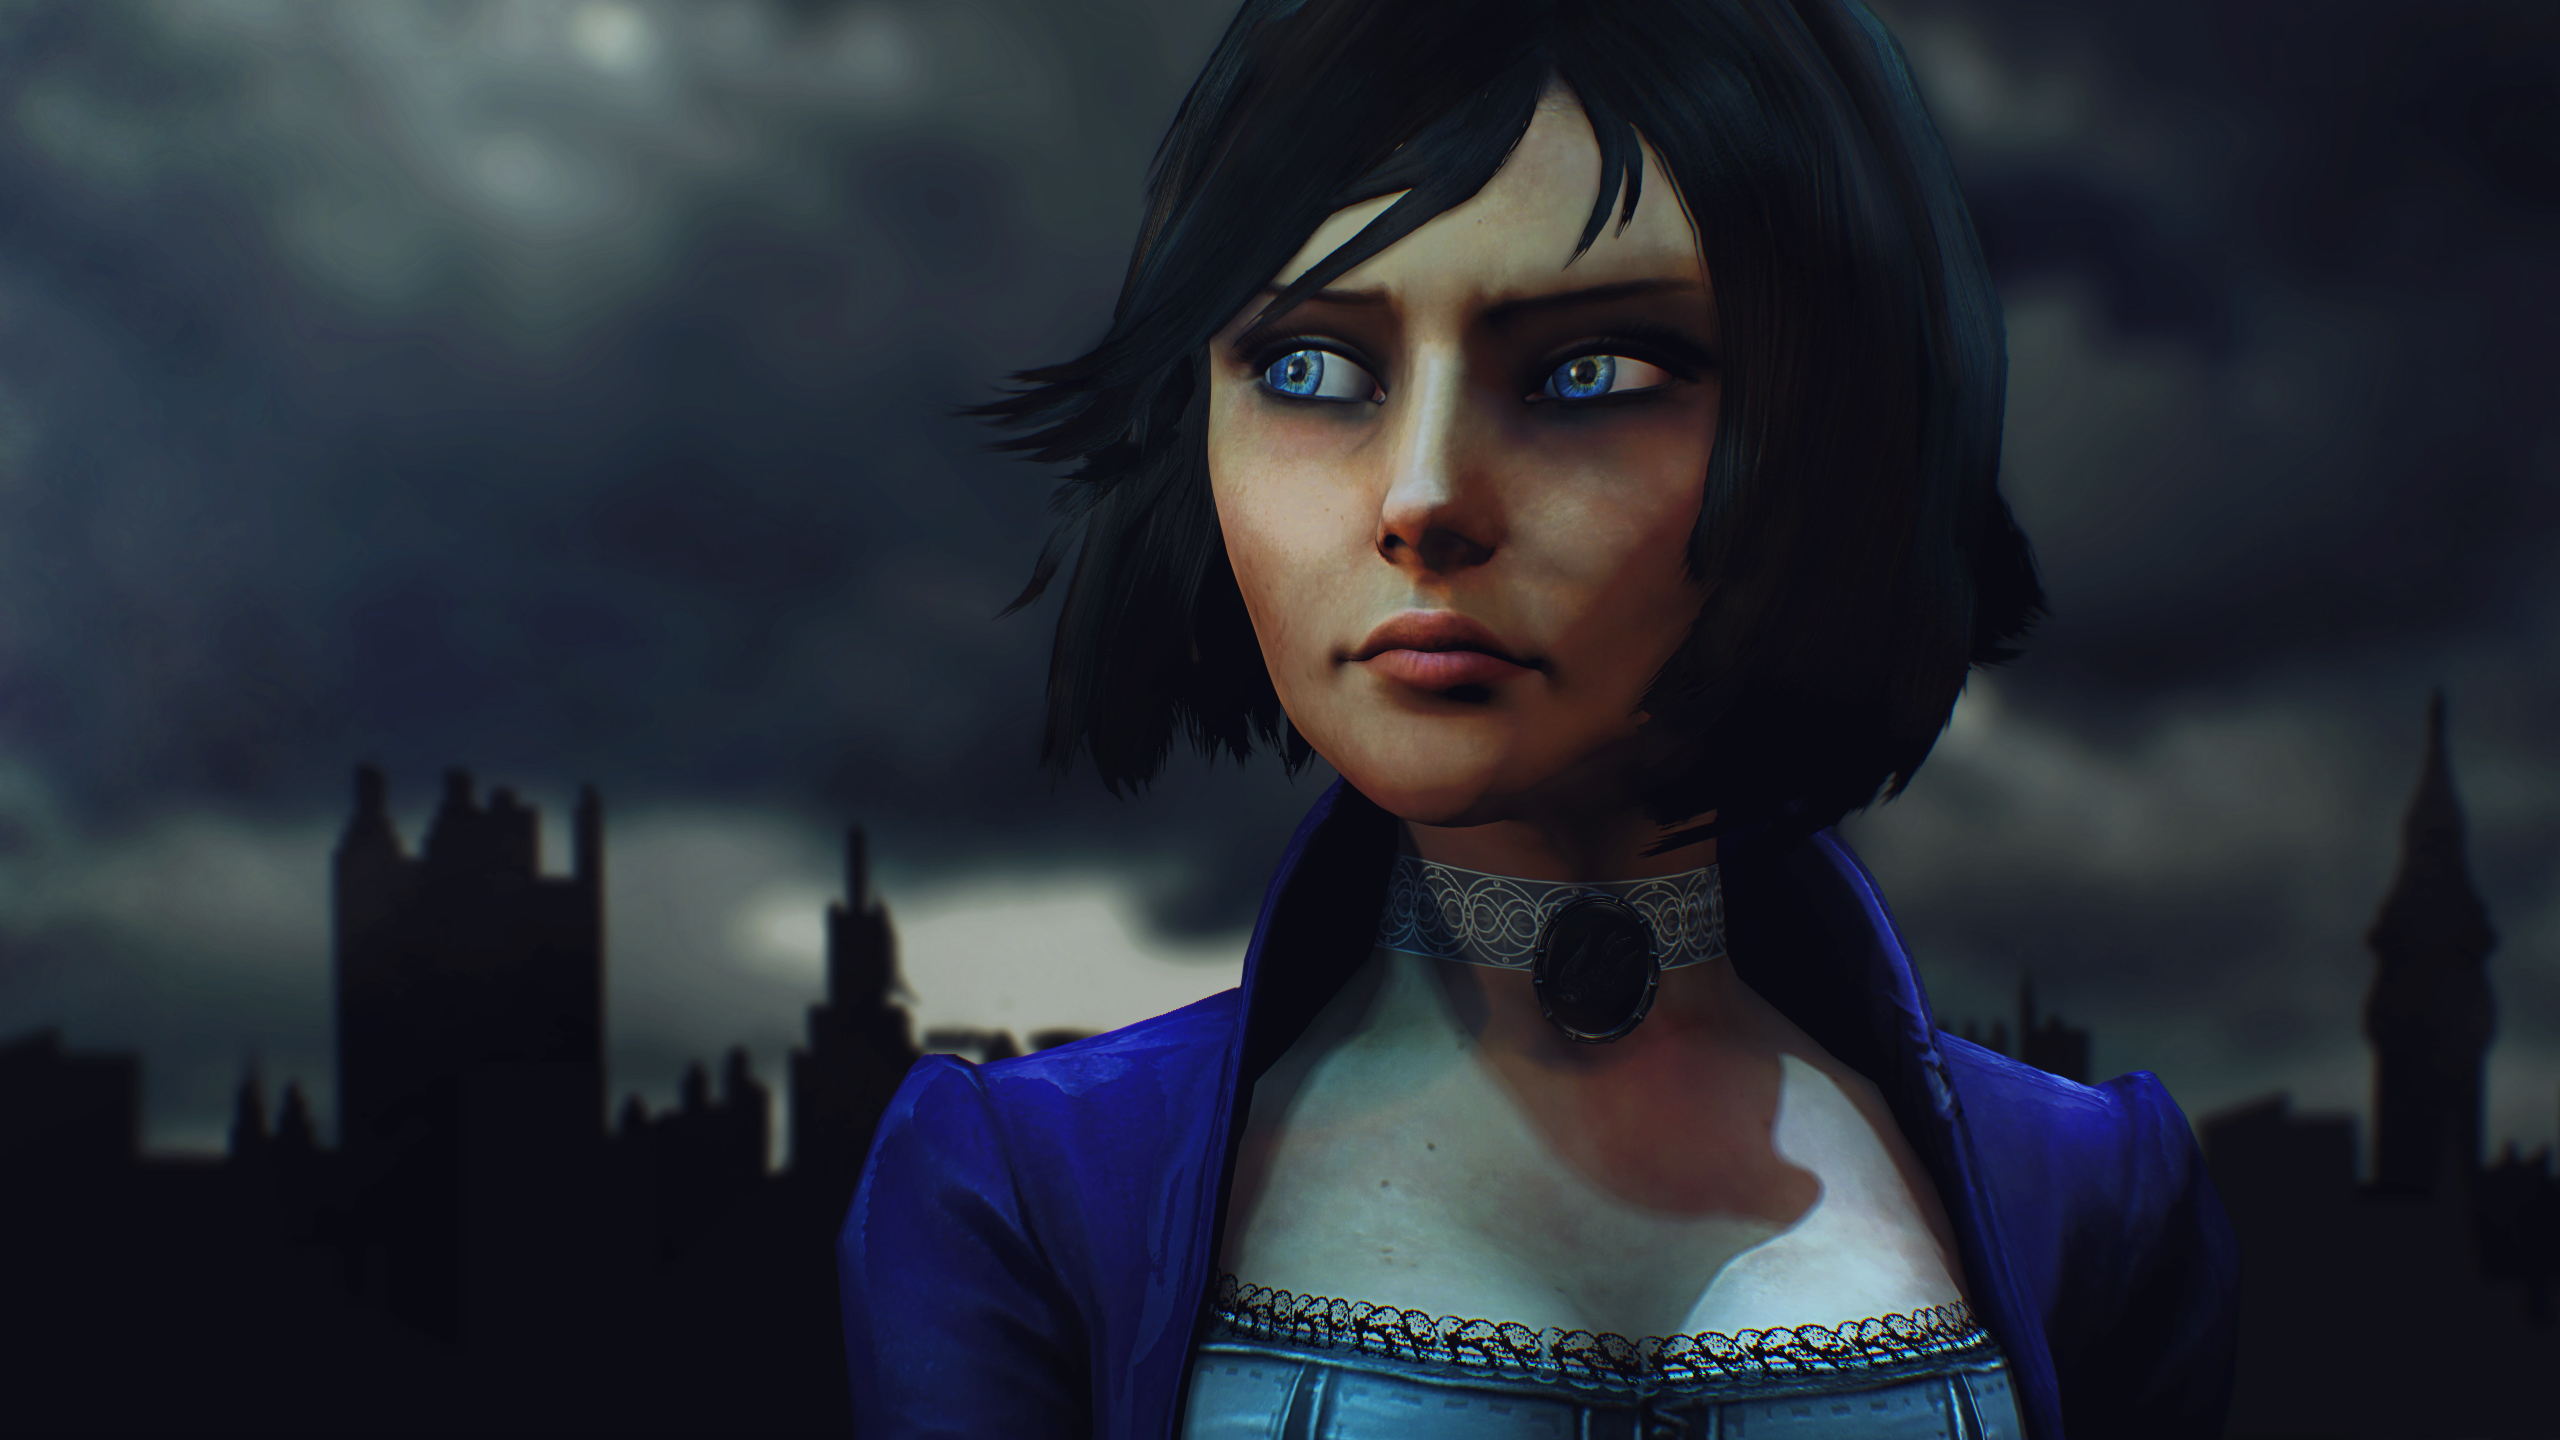 bioshock_infinite__elizabeth_by_dp_films-d6jfjq8